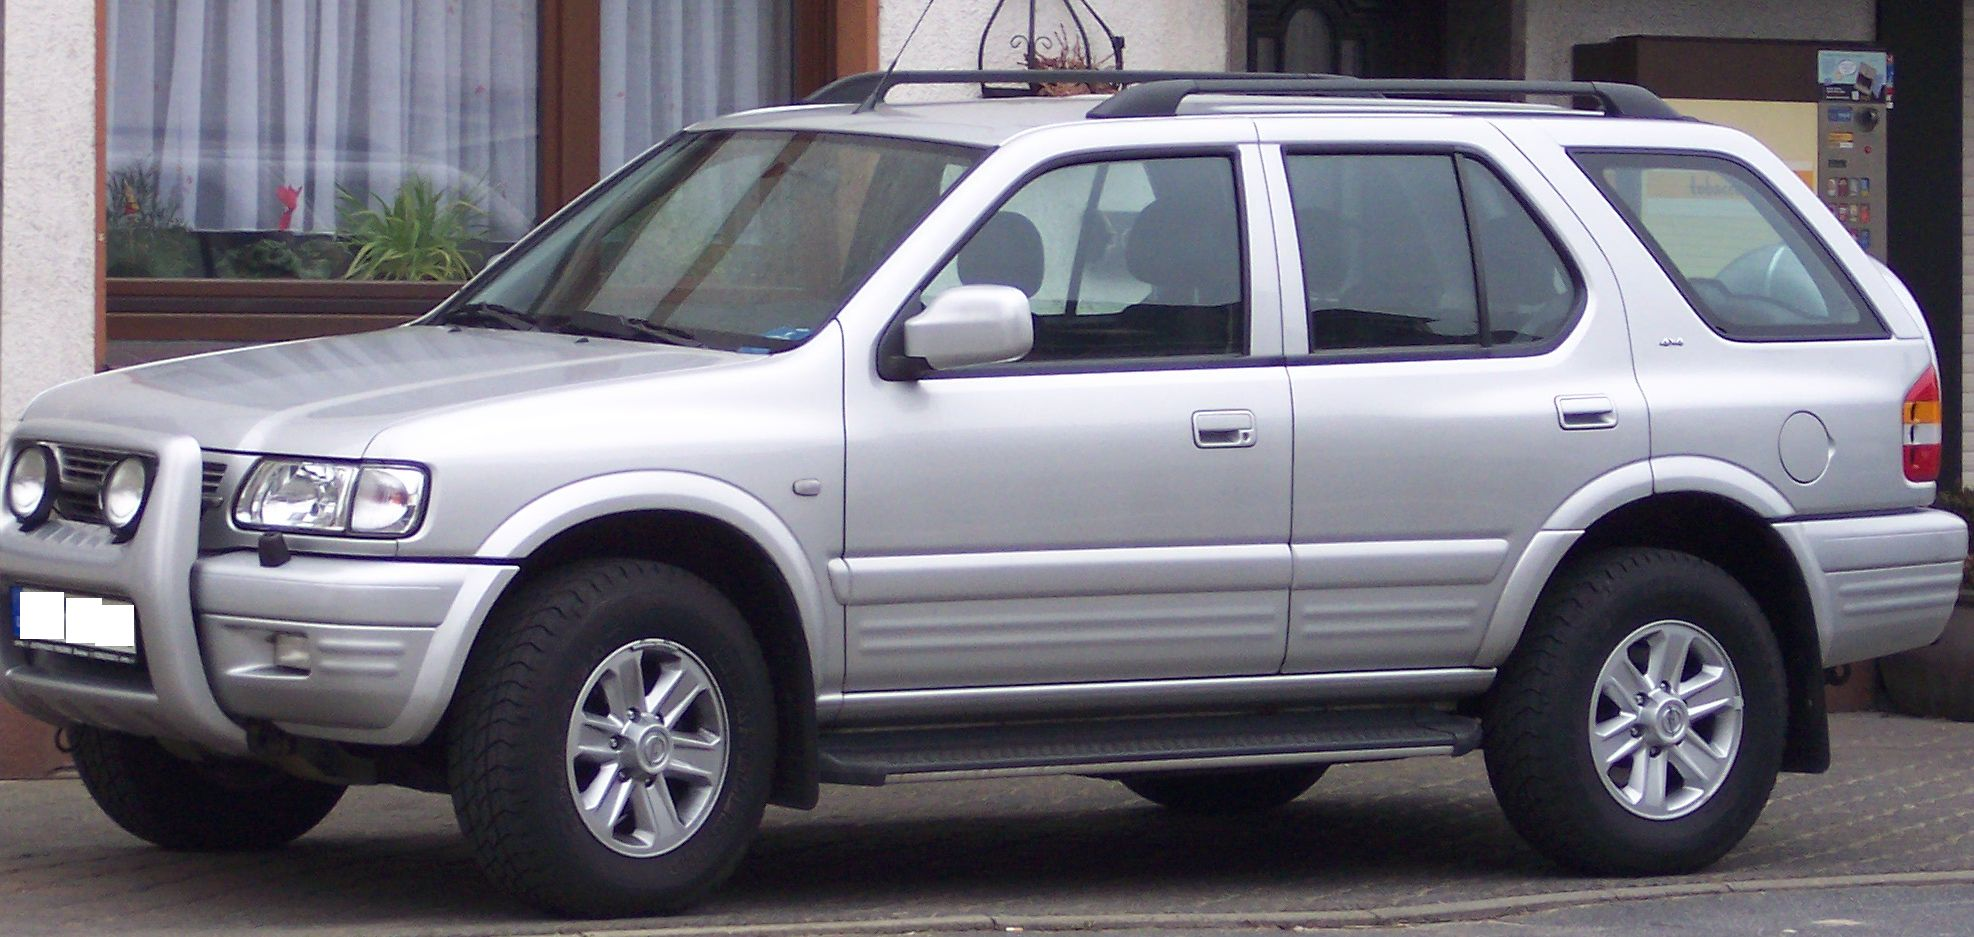 opel frontera-pic. 3